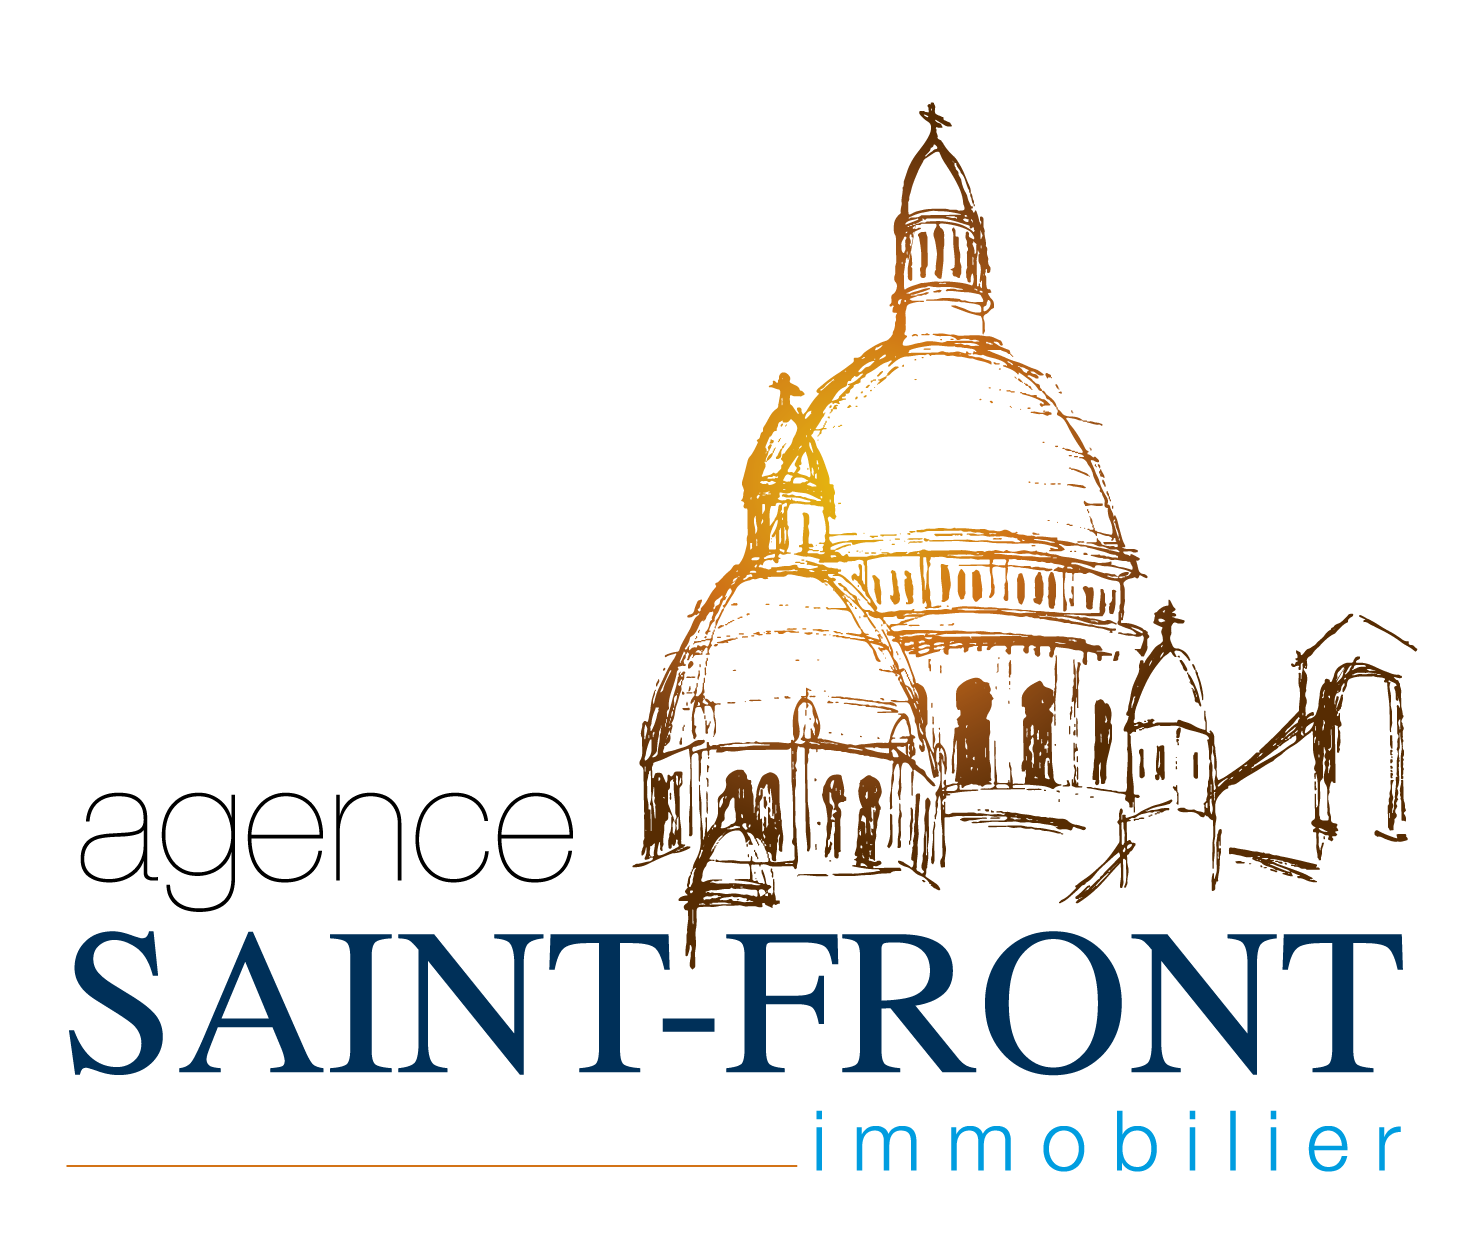 Saint front immobilier agence immobili re p rigueux for Agence immobiliere saint girons 09200